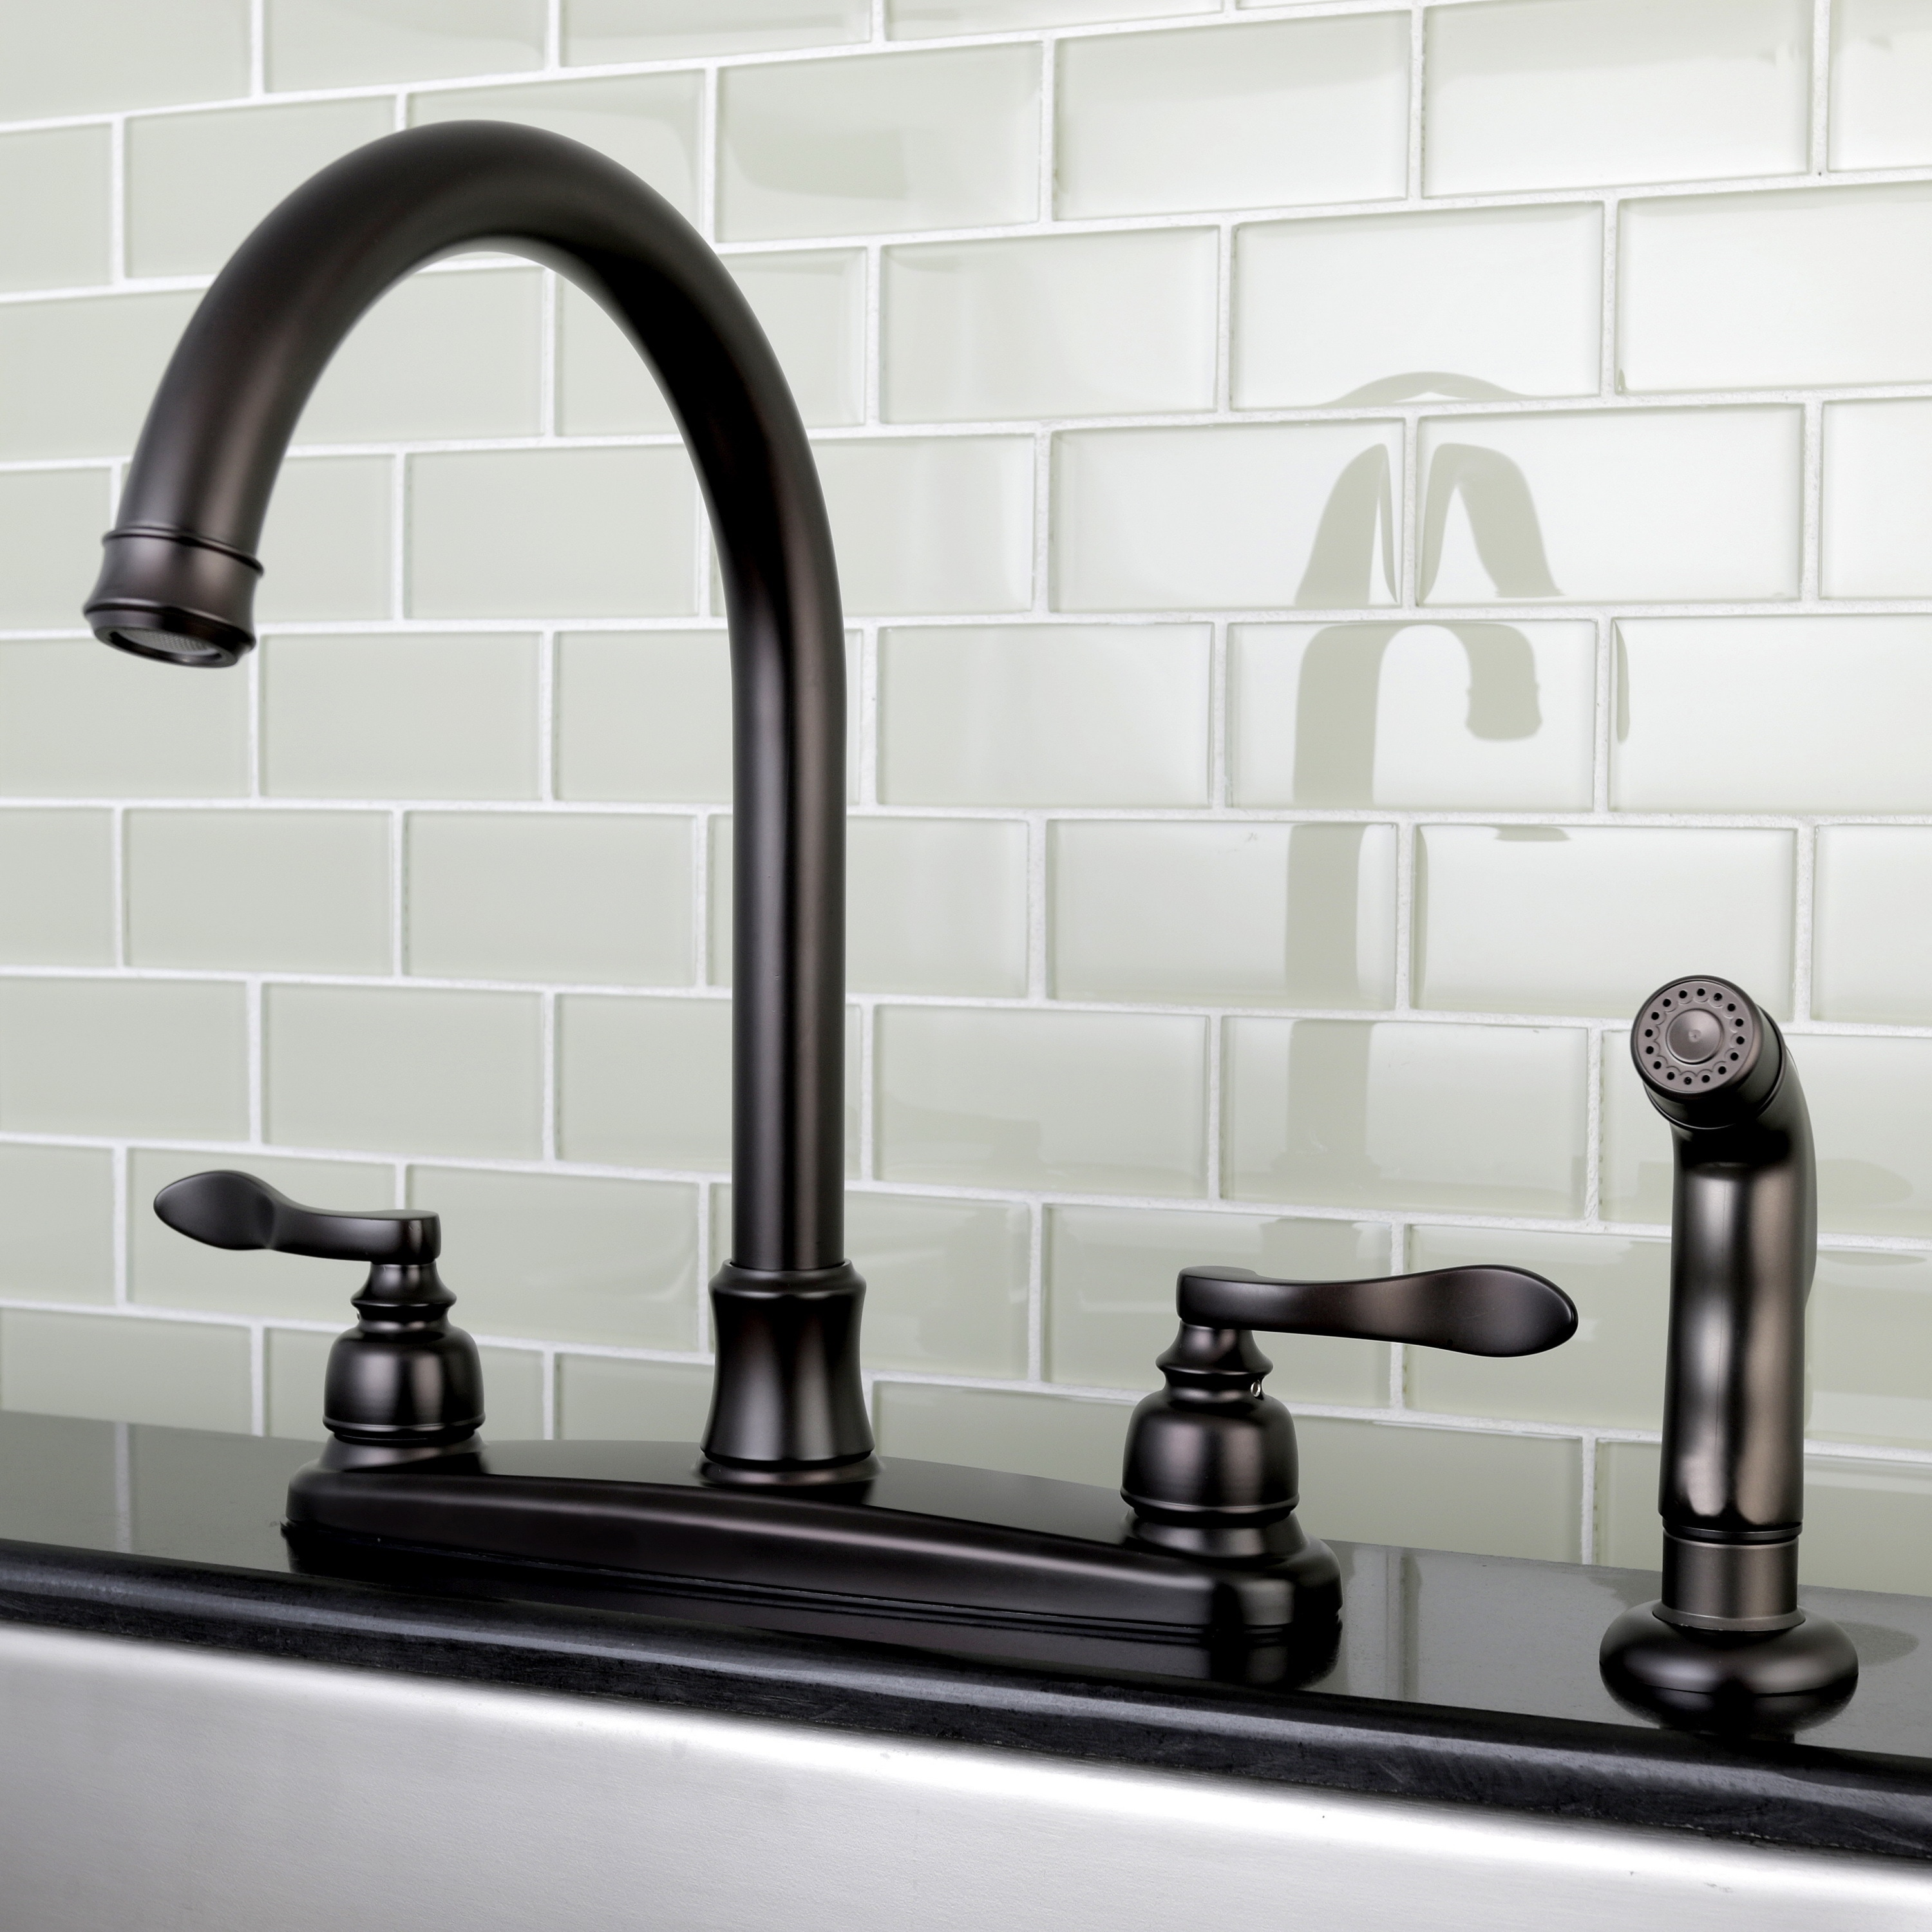 designer oil rubbed bronze kitchen faucet with side sprayer